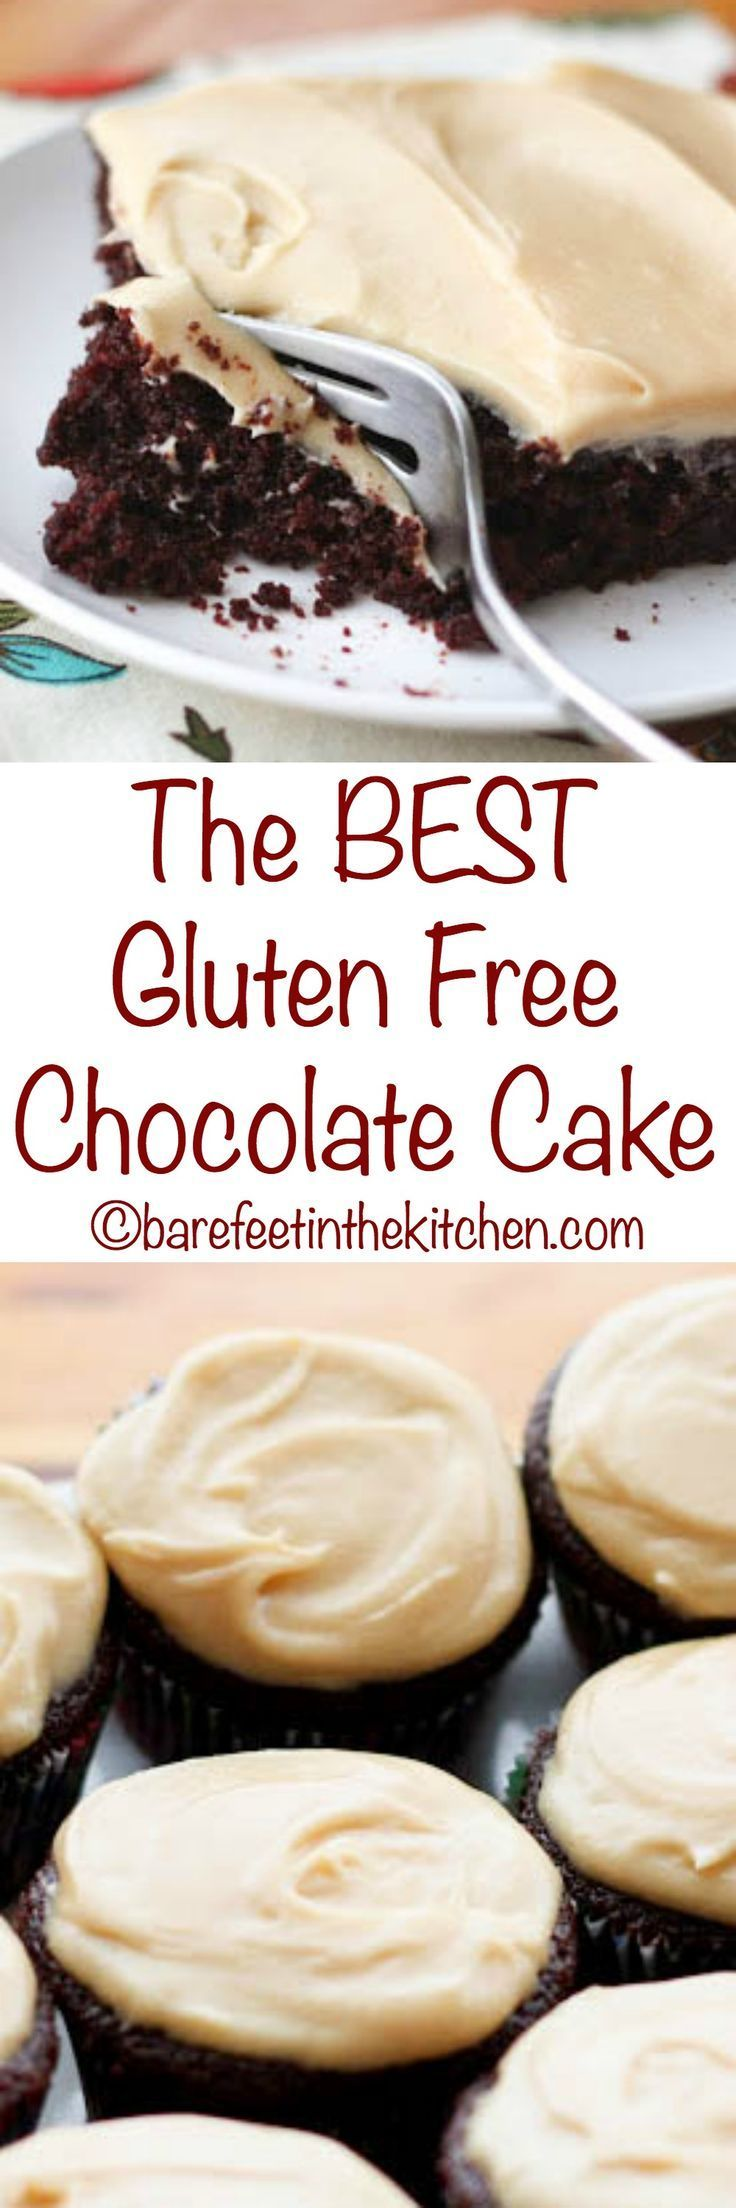 """The BEST Gluten Free Chocolate Cake doesn't taste """"gluten free"""" at ALL!"""